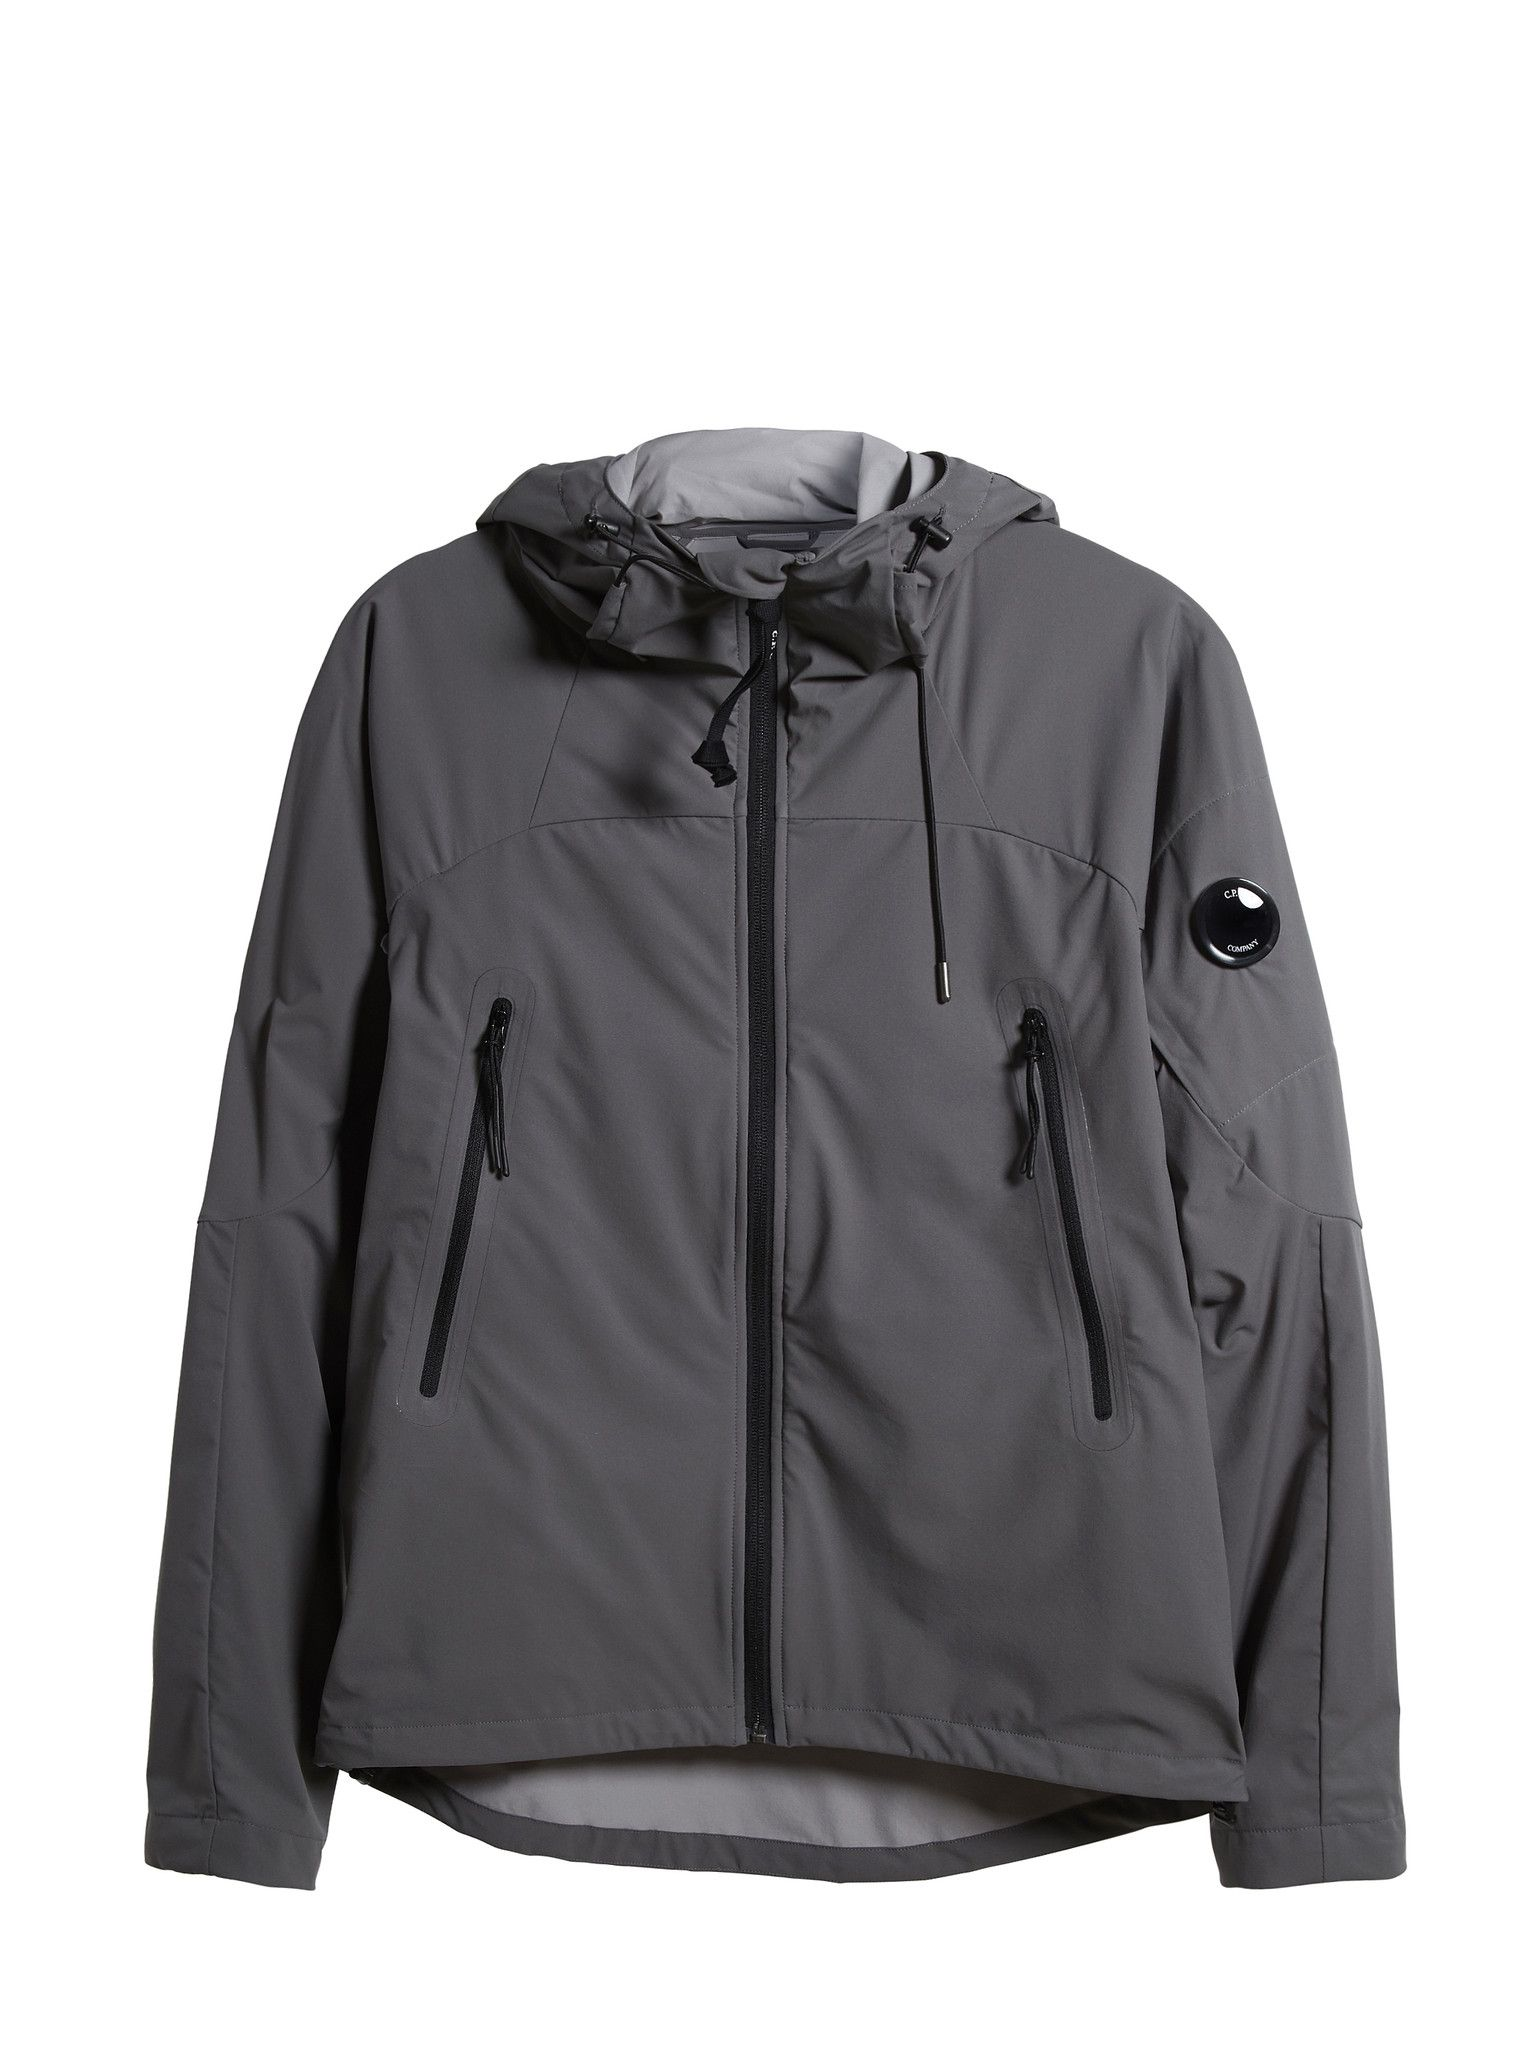 C.P Company Pro-tek Lightweight Hooded Jacket in Grey | man ...